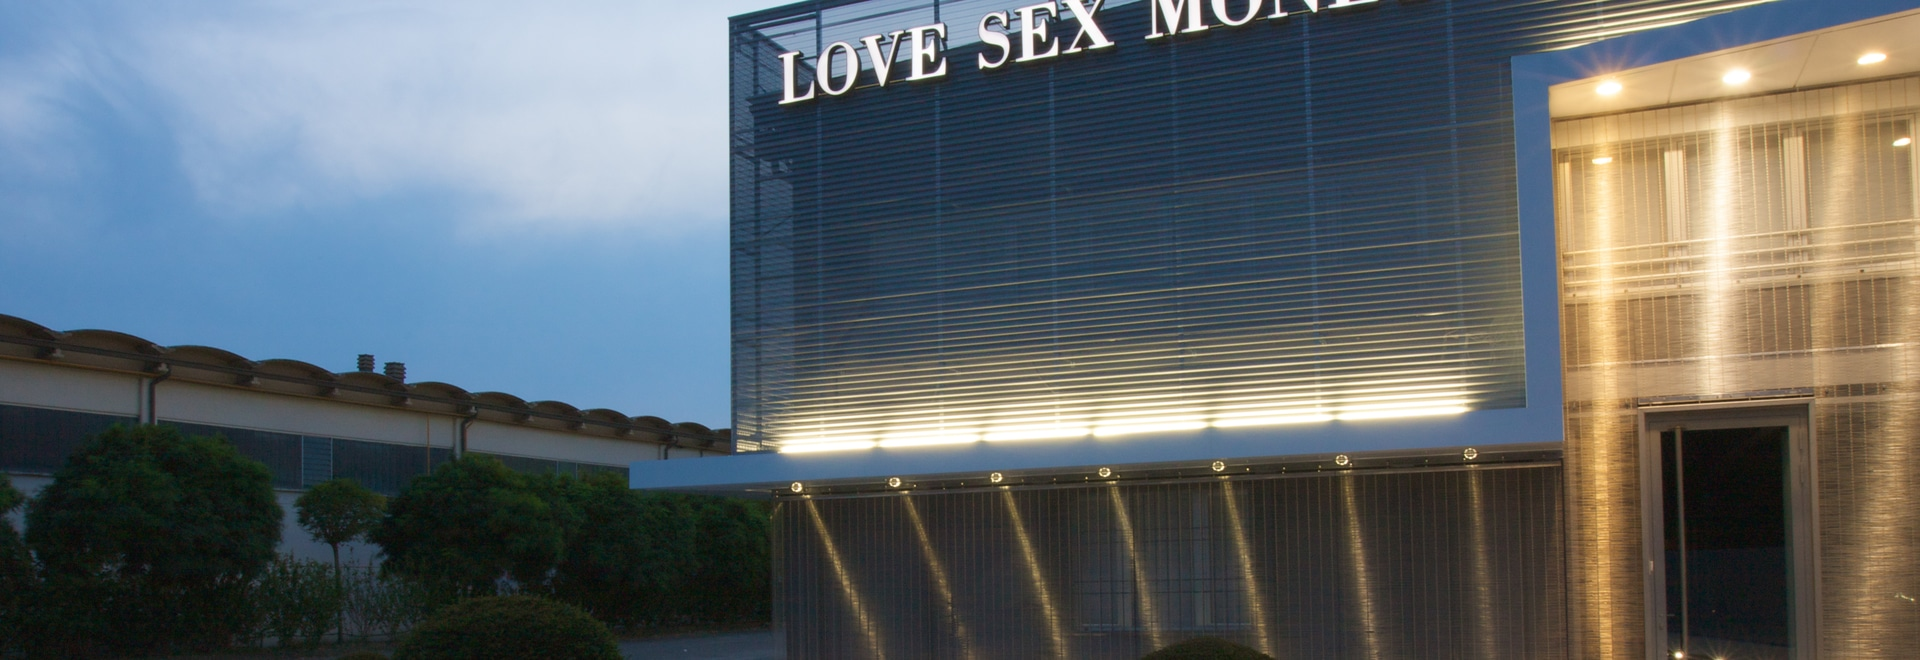 Facades - Love Sex Money Headquarters; Carpi, Modena